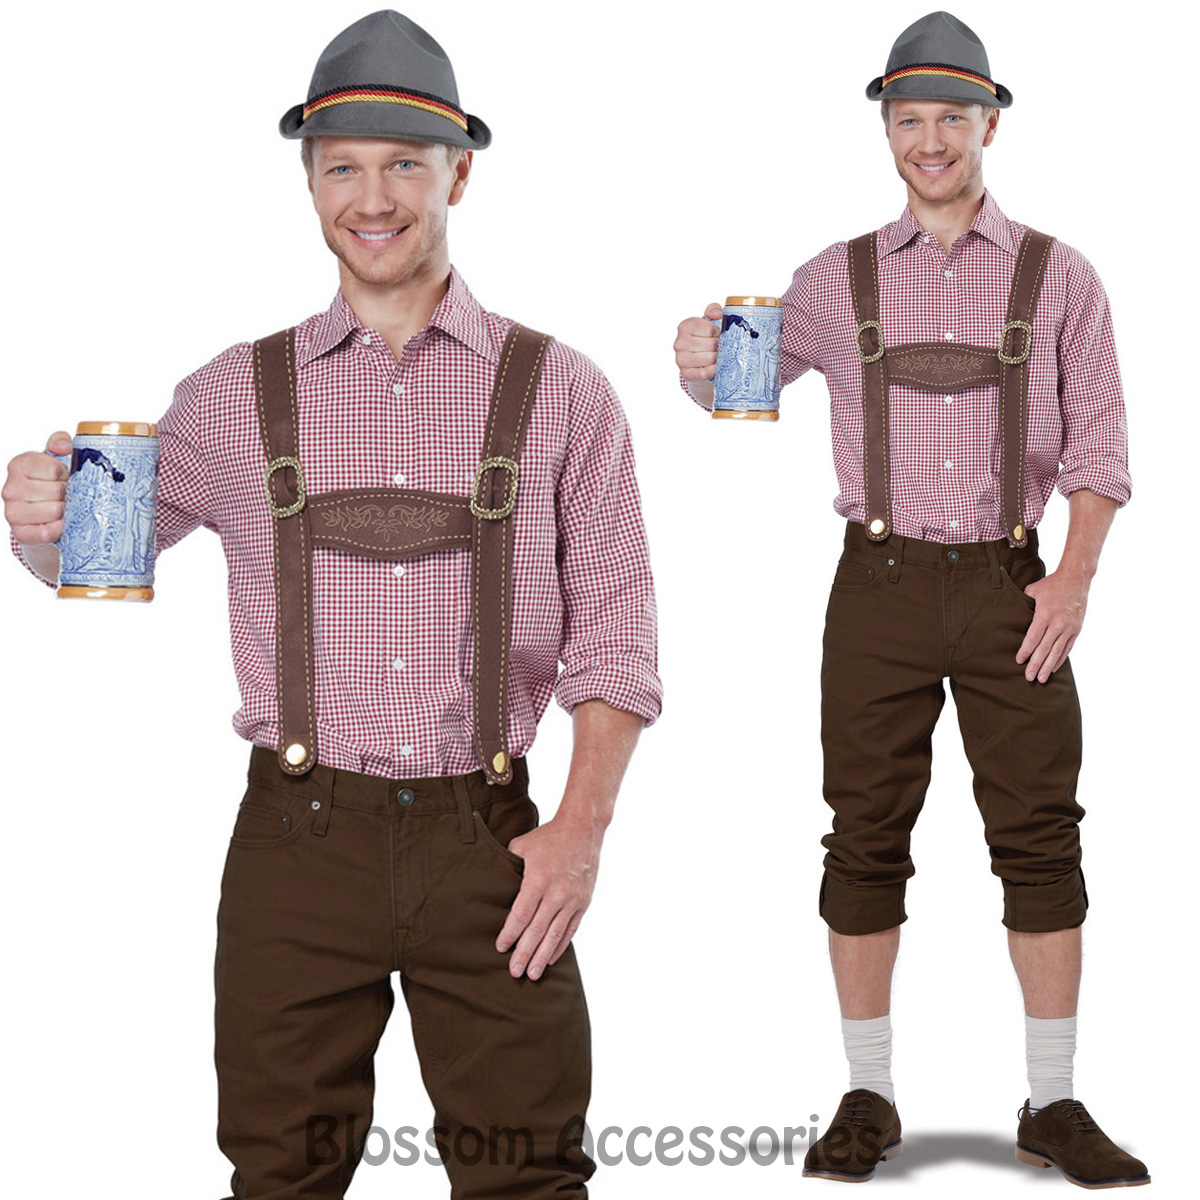 CL534-Lederhosen-Kit-Men-Suspenders-Hat-Oktoberfest-German-Beer-Bavarian-Costume